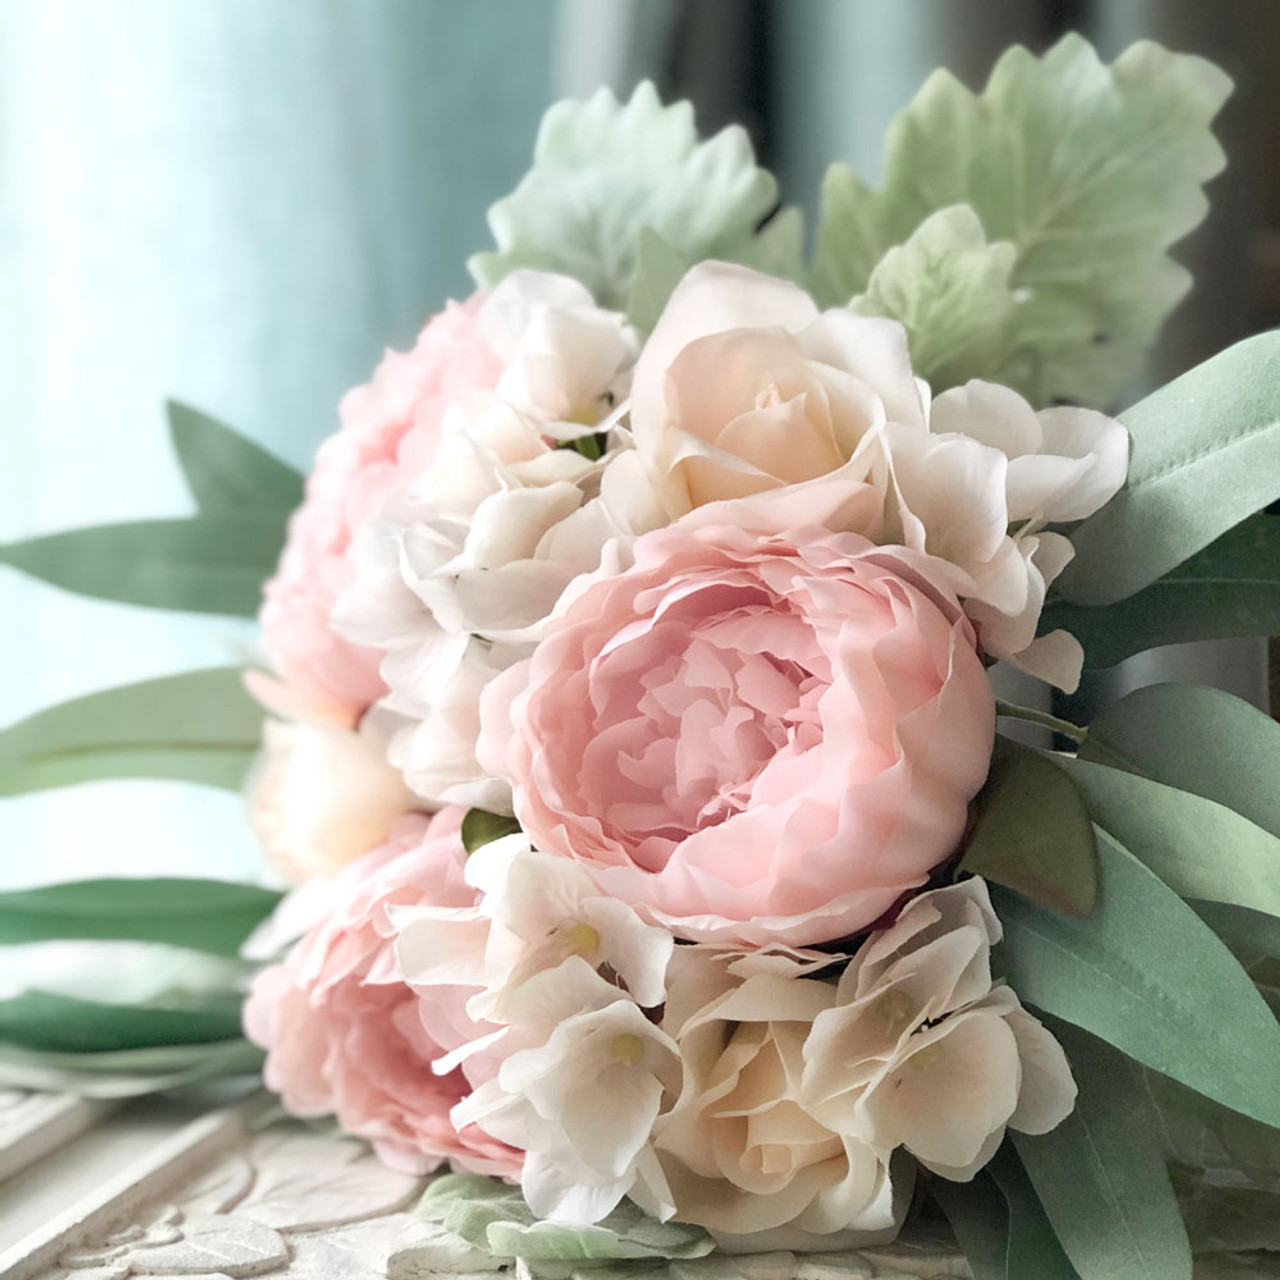 Blush Pink Peony Eucalyptus Wedding Bouquets Artificial Flowers Medium Thebridesbouquet Com